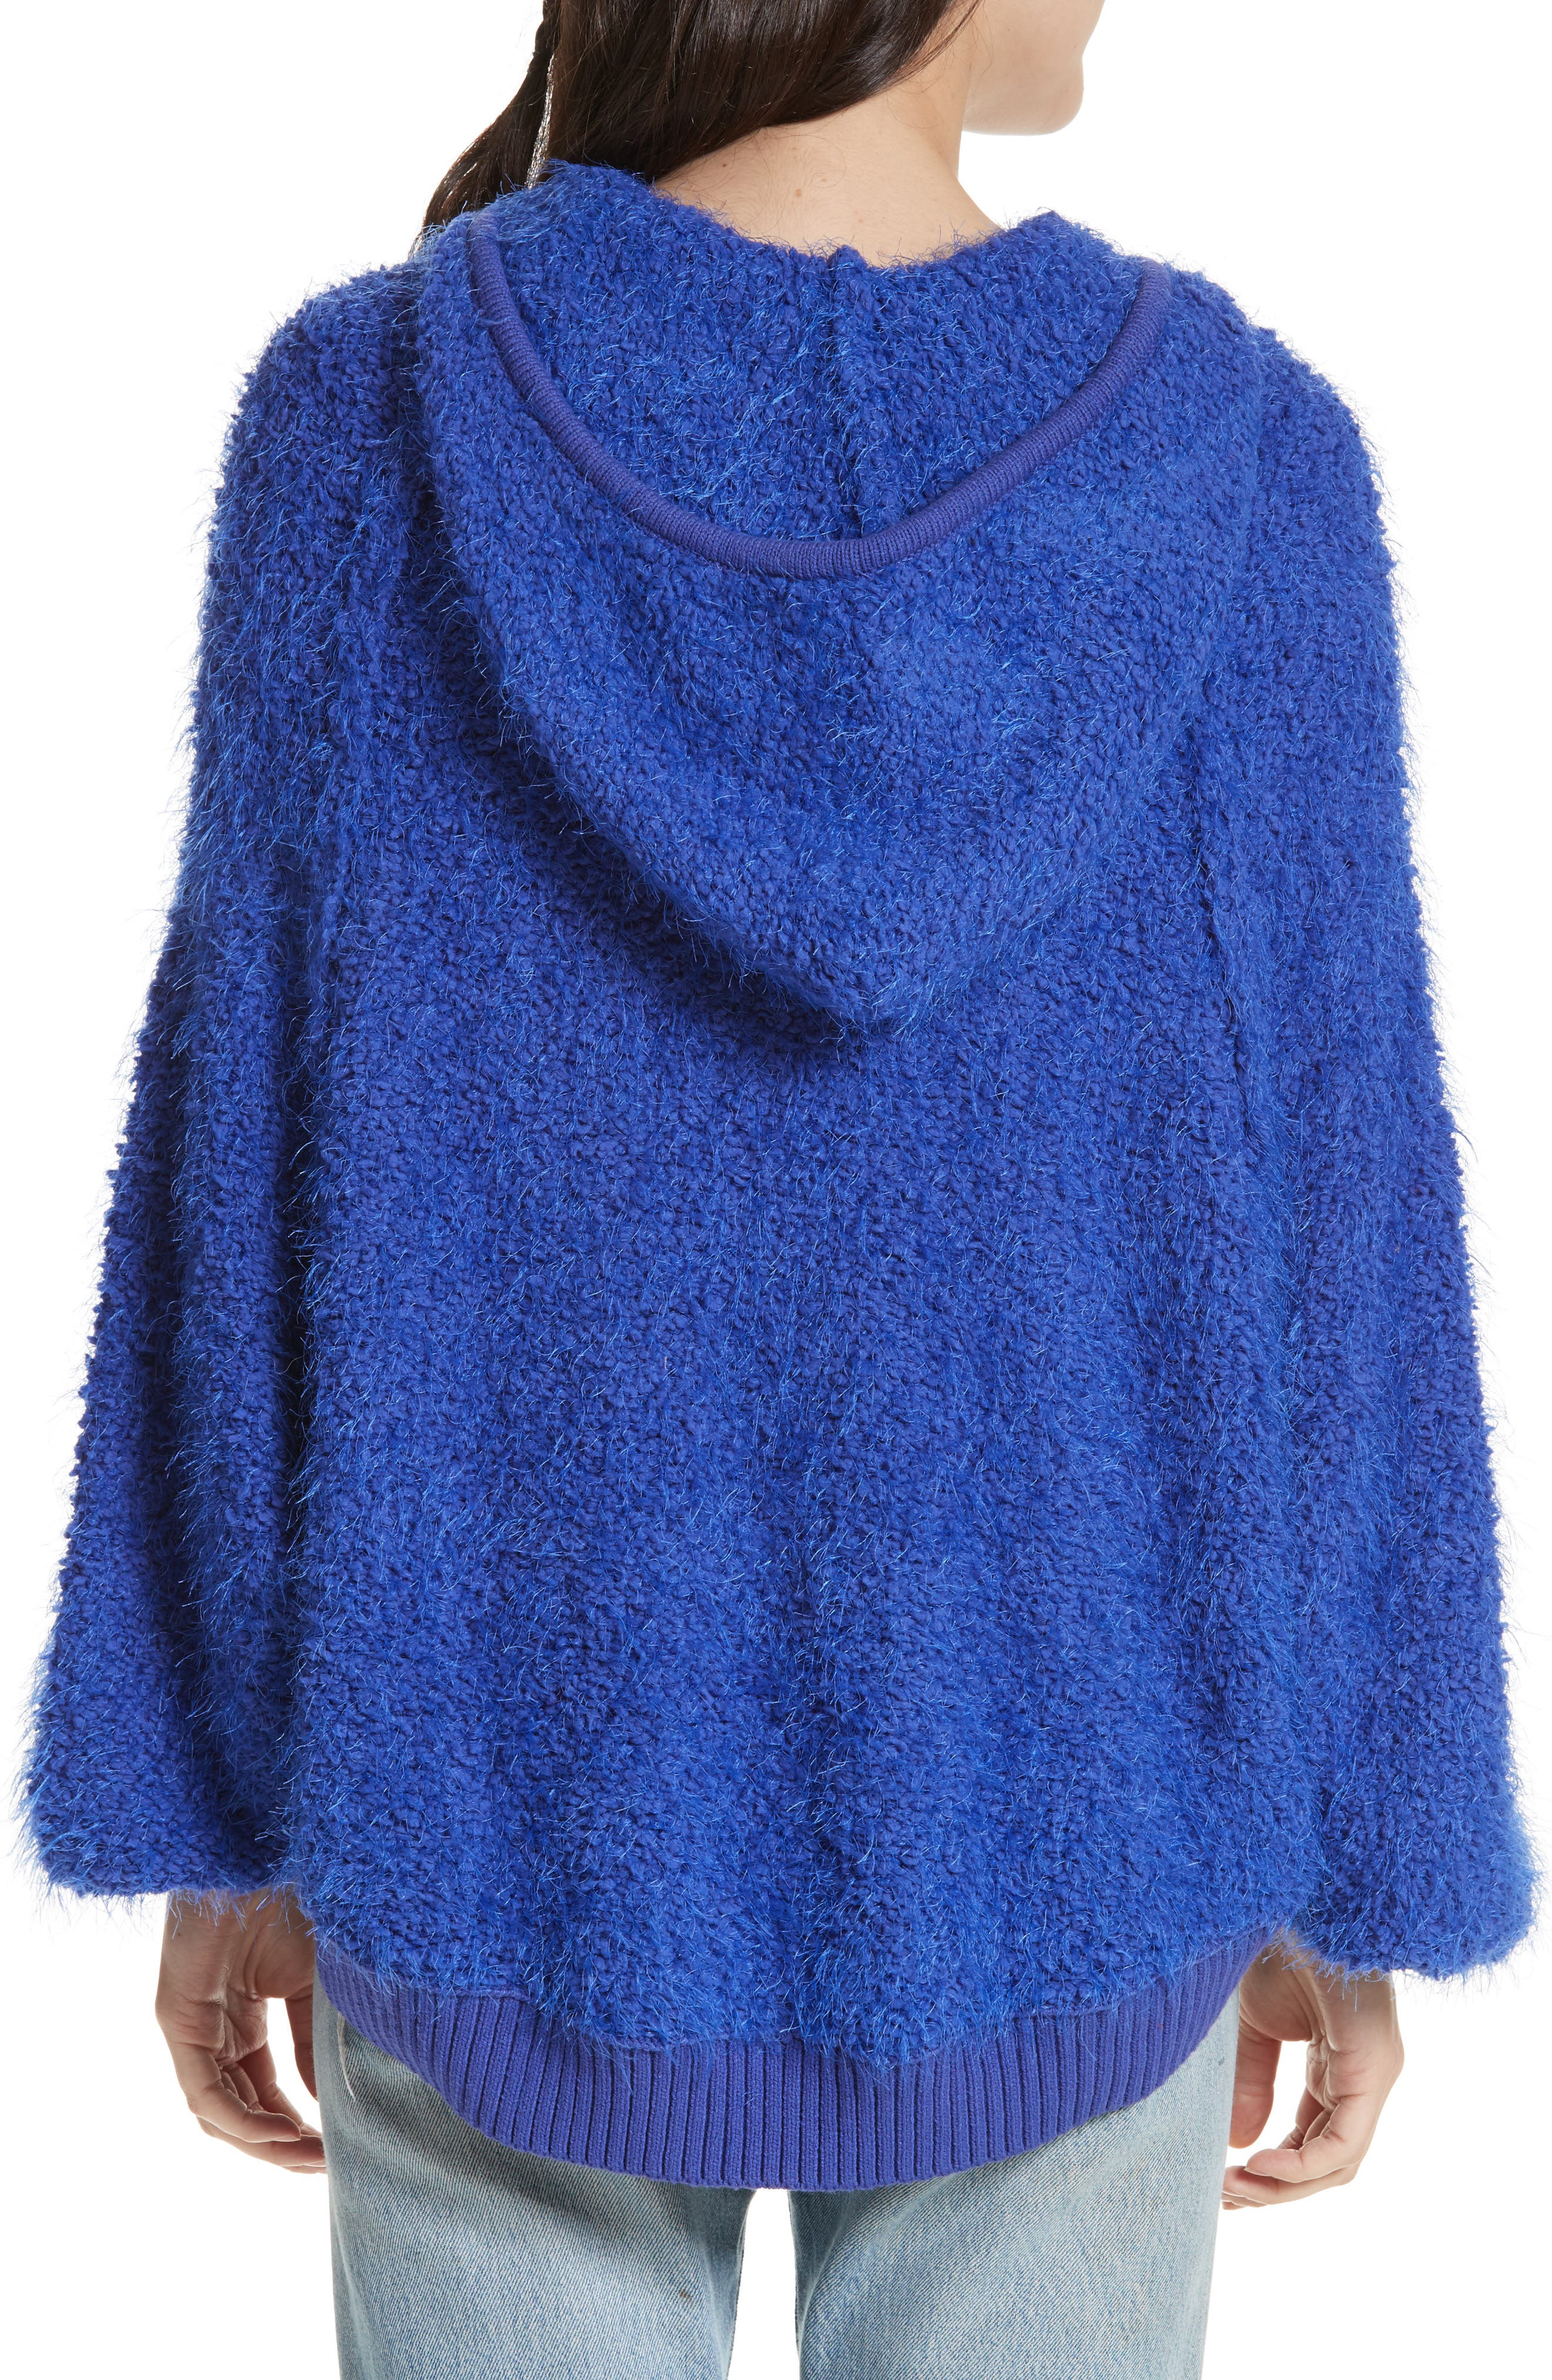 Furry Time Hooded Jacket,                             Alternate thumbnail 2, color,                             Blue